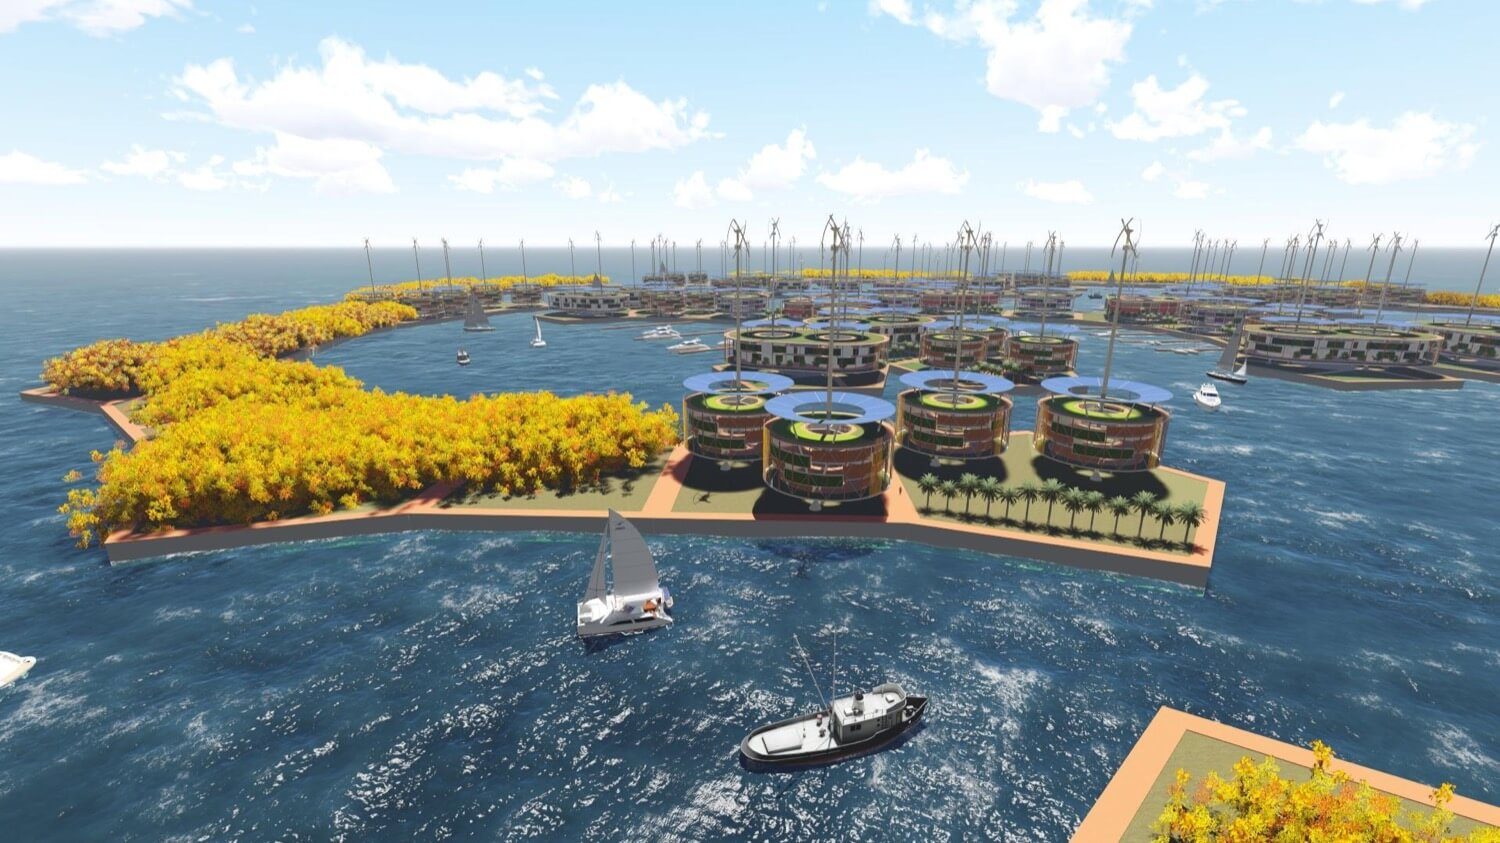 Floating city will have 300 homes, their government and their own cryptocurrency